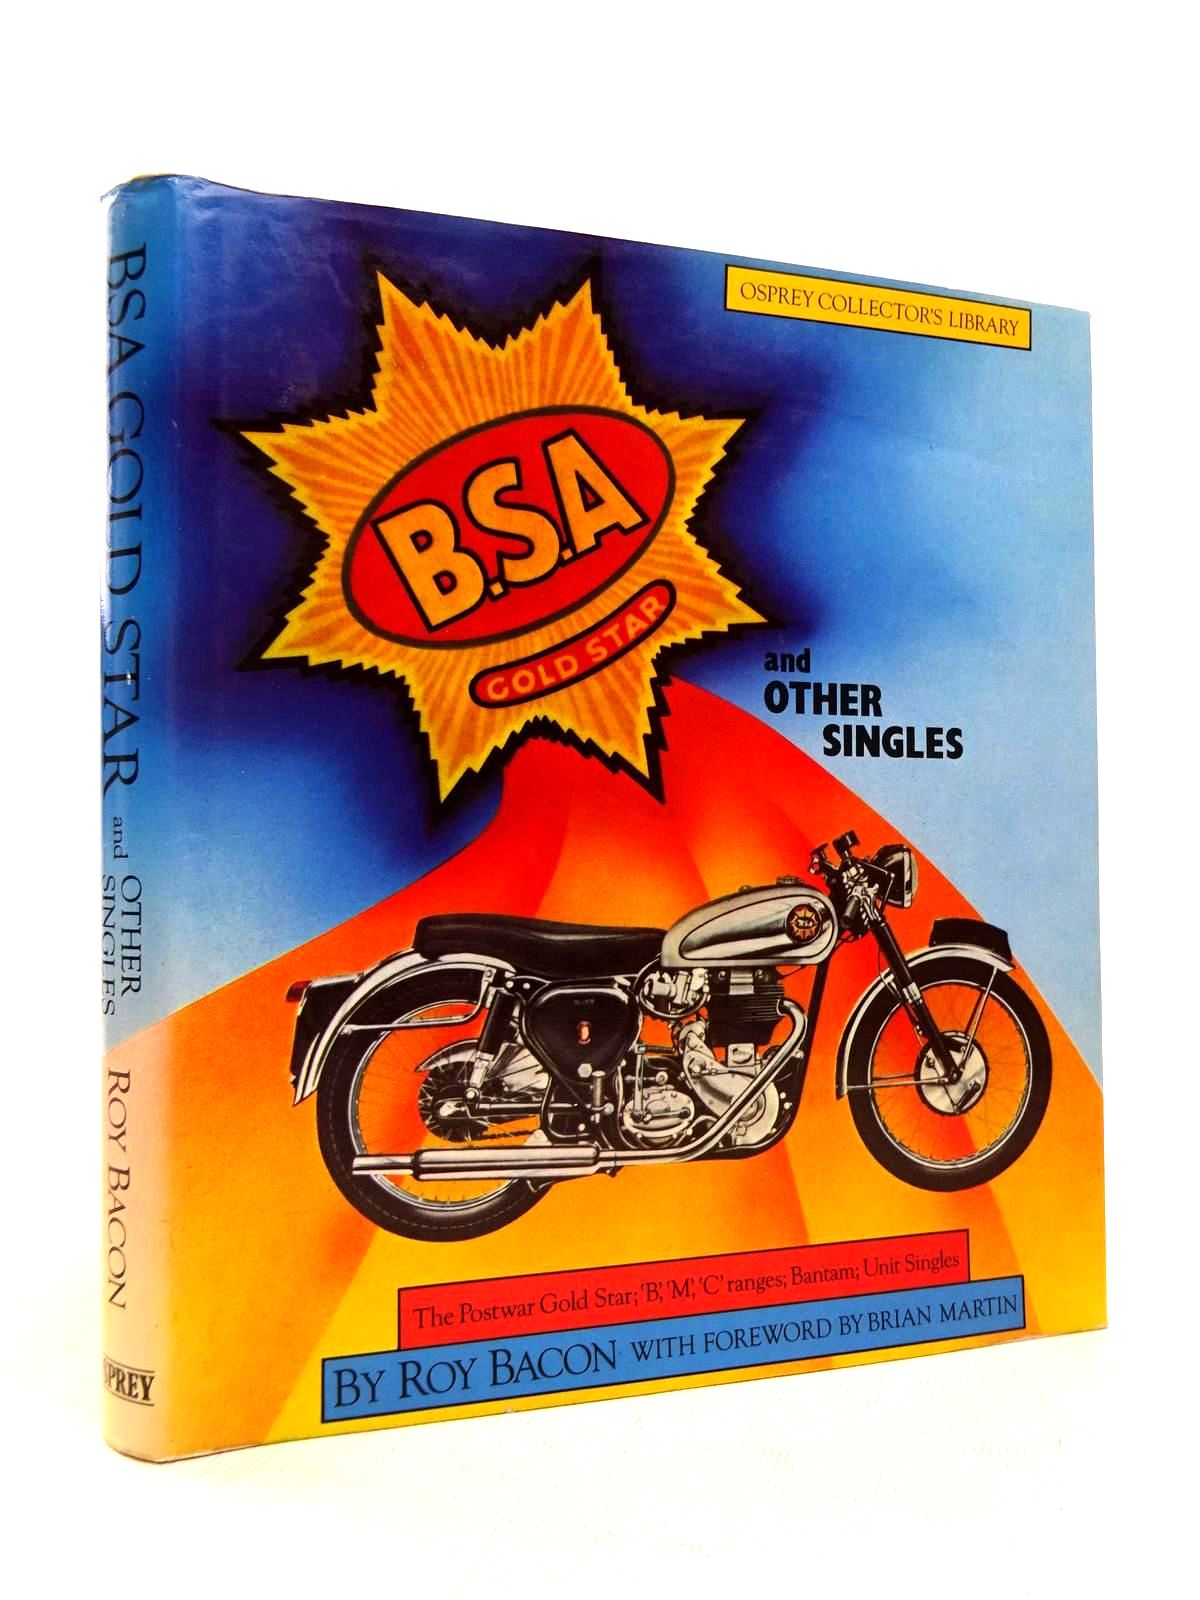 Photo of BSA GOLD STAR AND OTHER SINGLES written by Bacon, Roy published by Osprey Publishing (STOCK CODE: 1817007)  for sale by Stella & Rose's Books